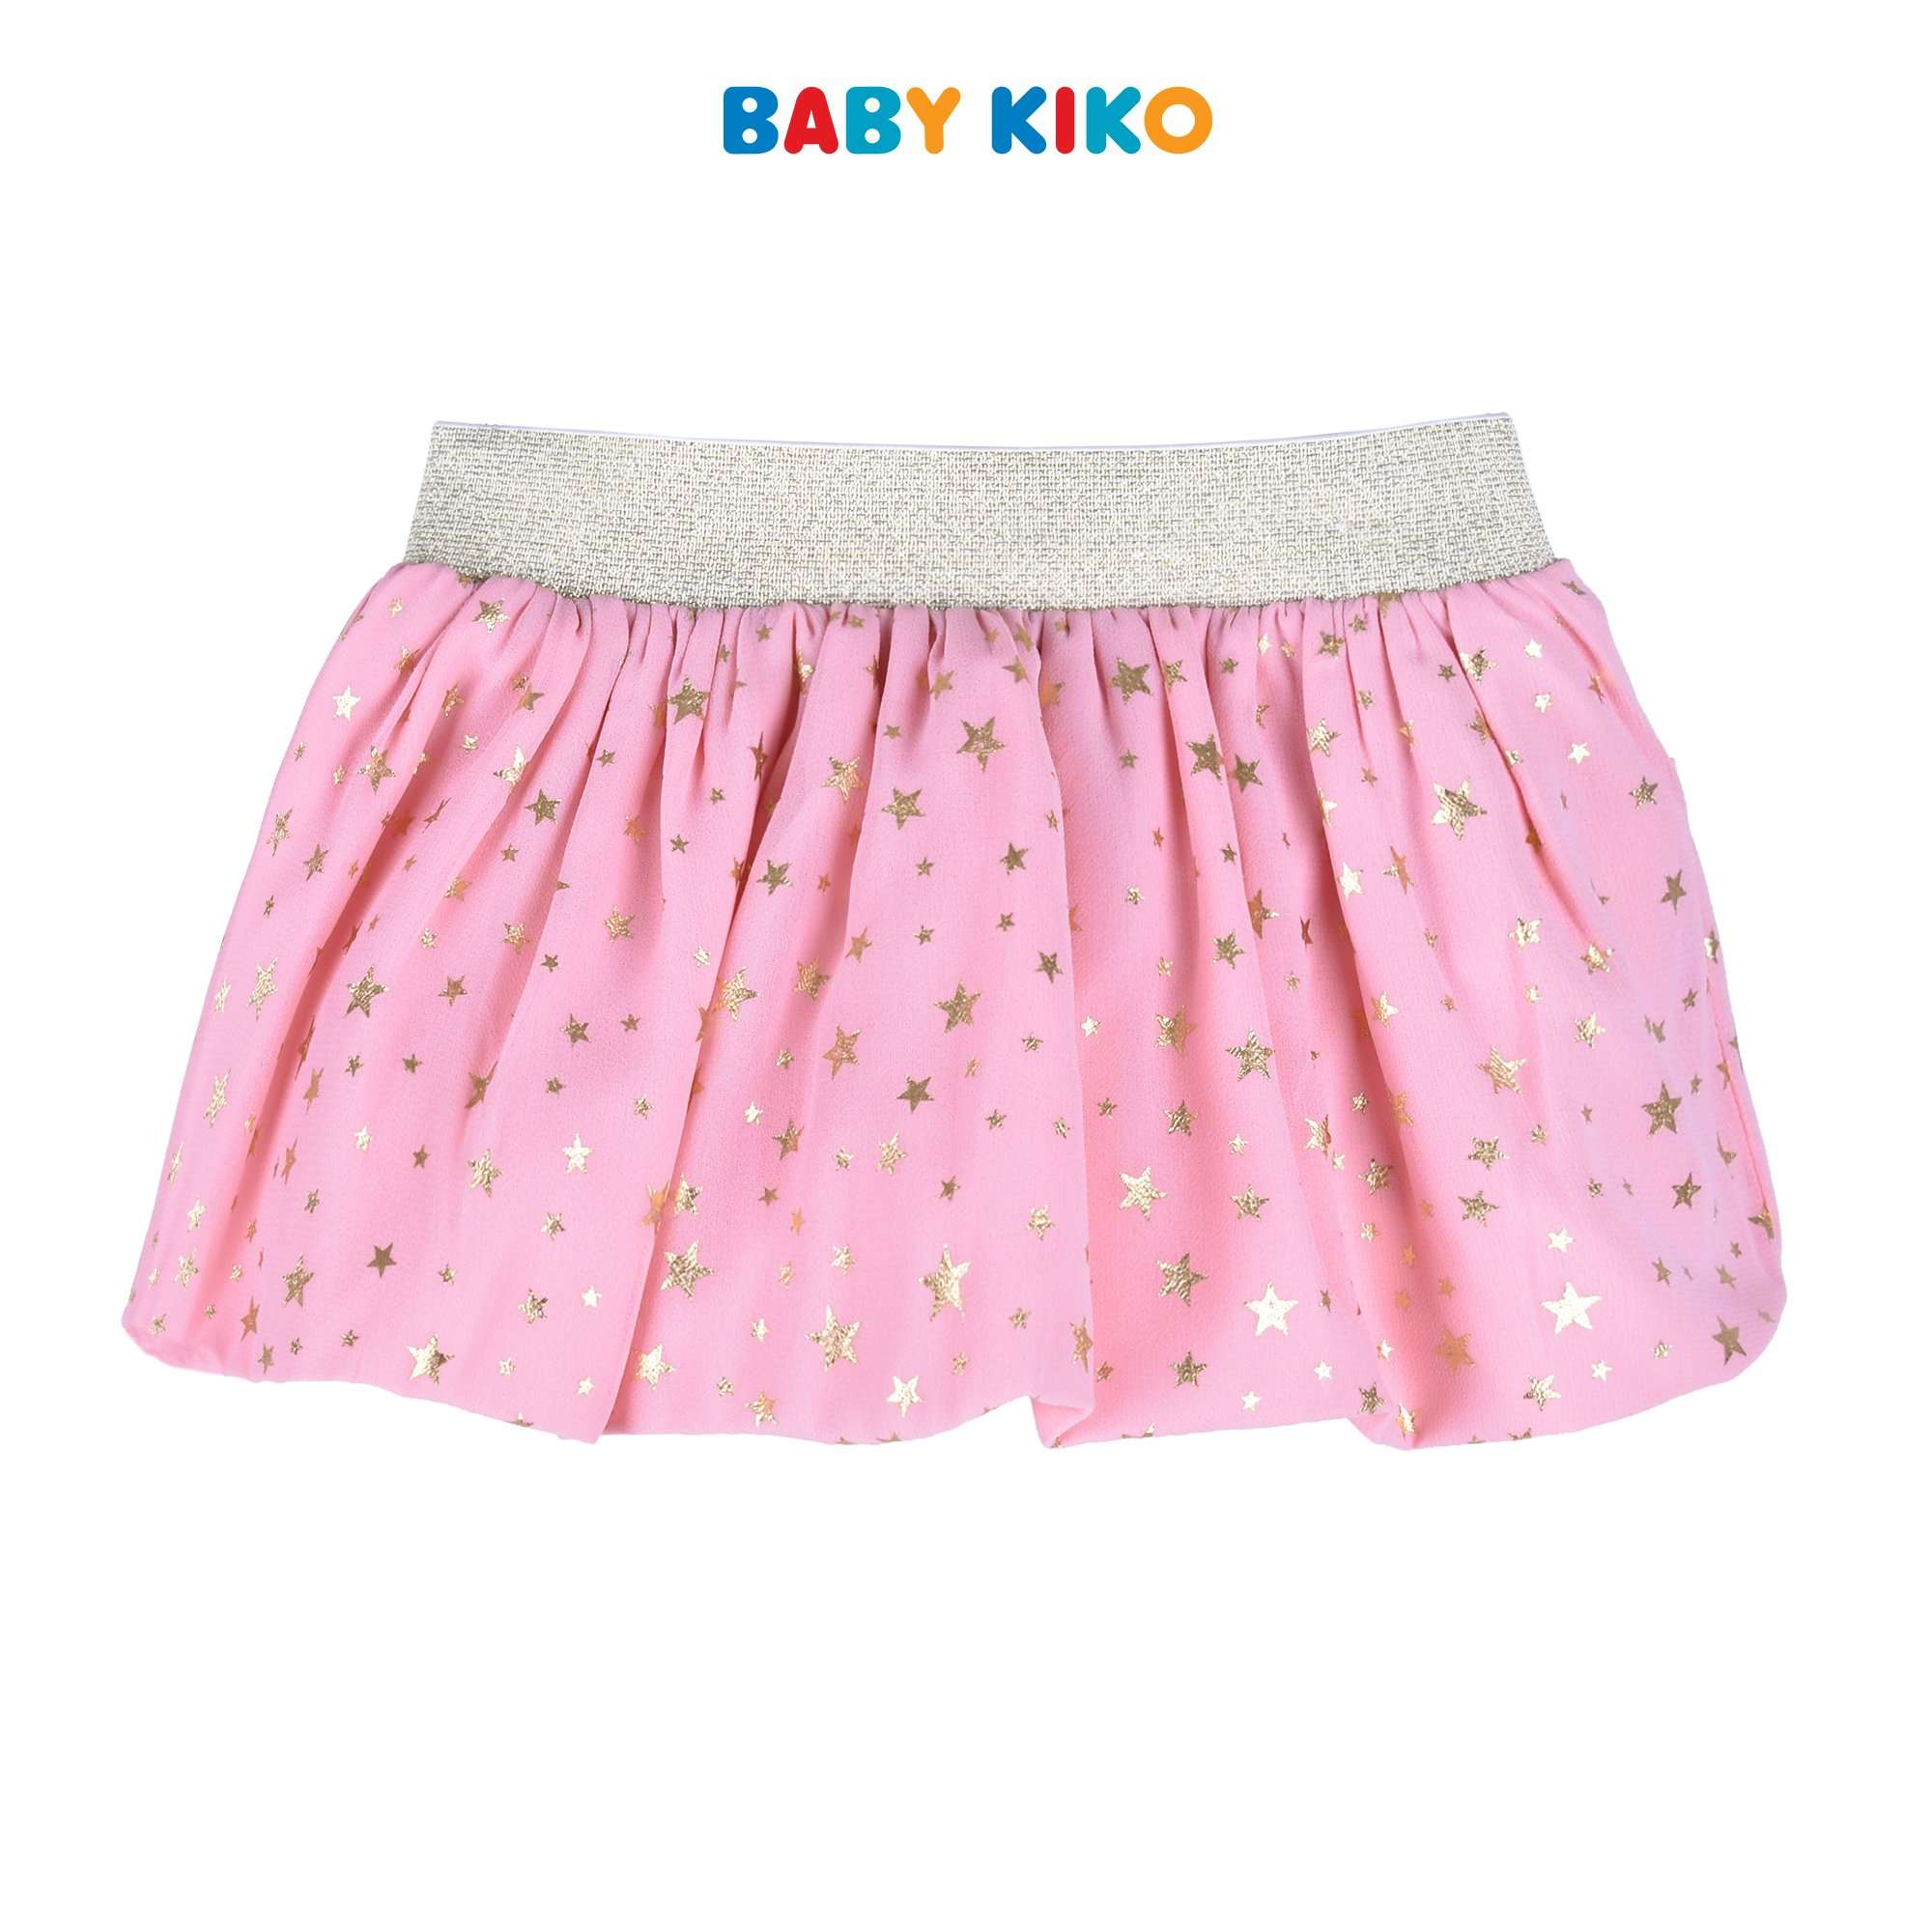 Baby KIKO Baby Girl Short Skirt With Panty Lace - Pink 330060-262 : Buy Baby KIKO online at CMG.MY